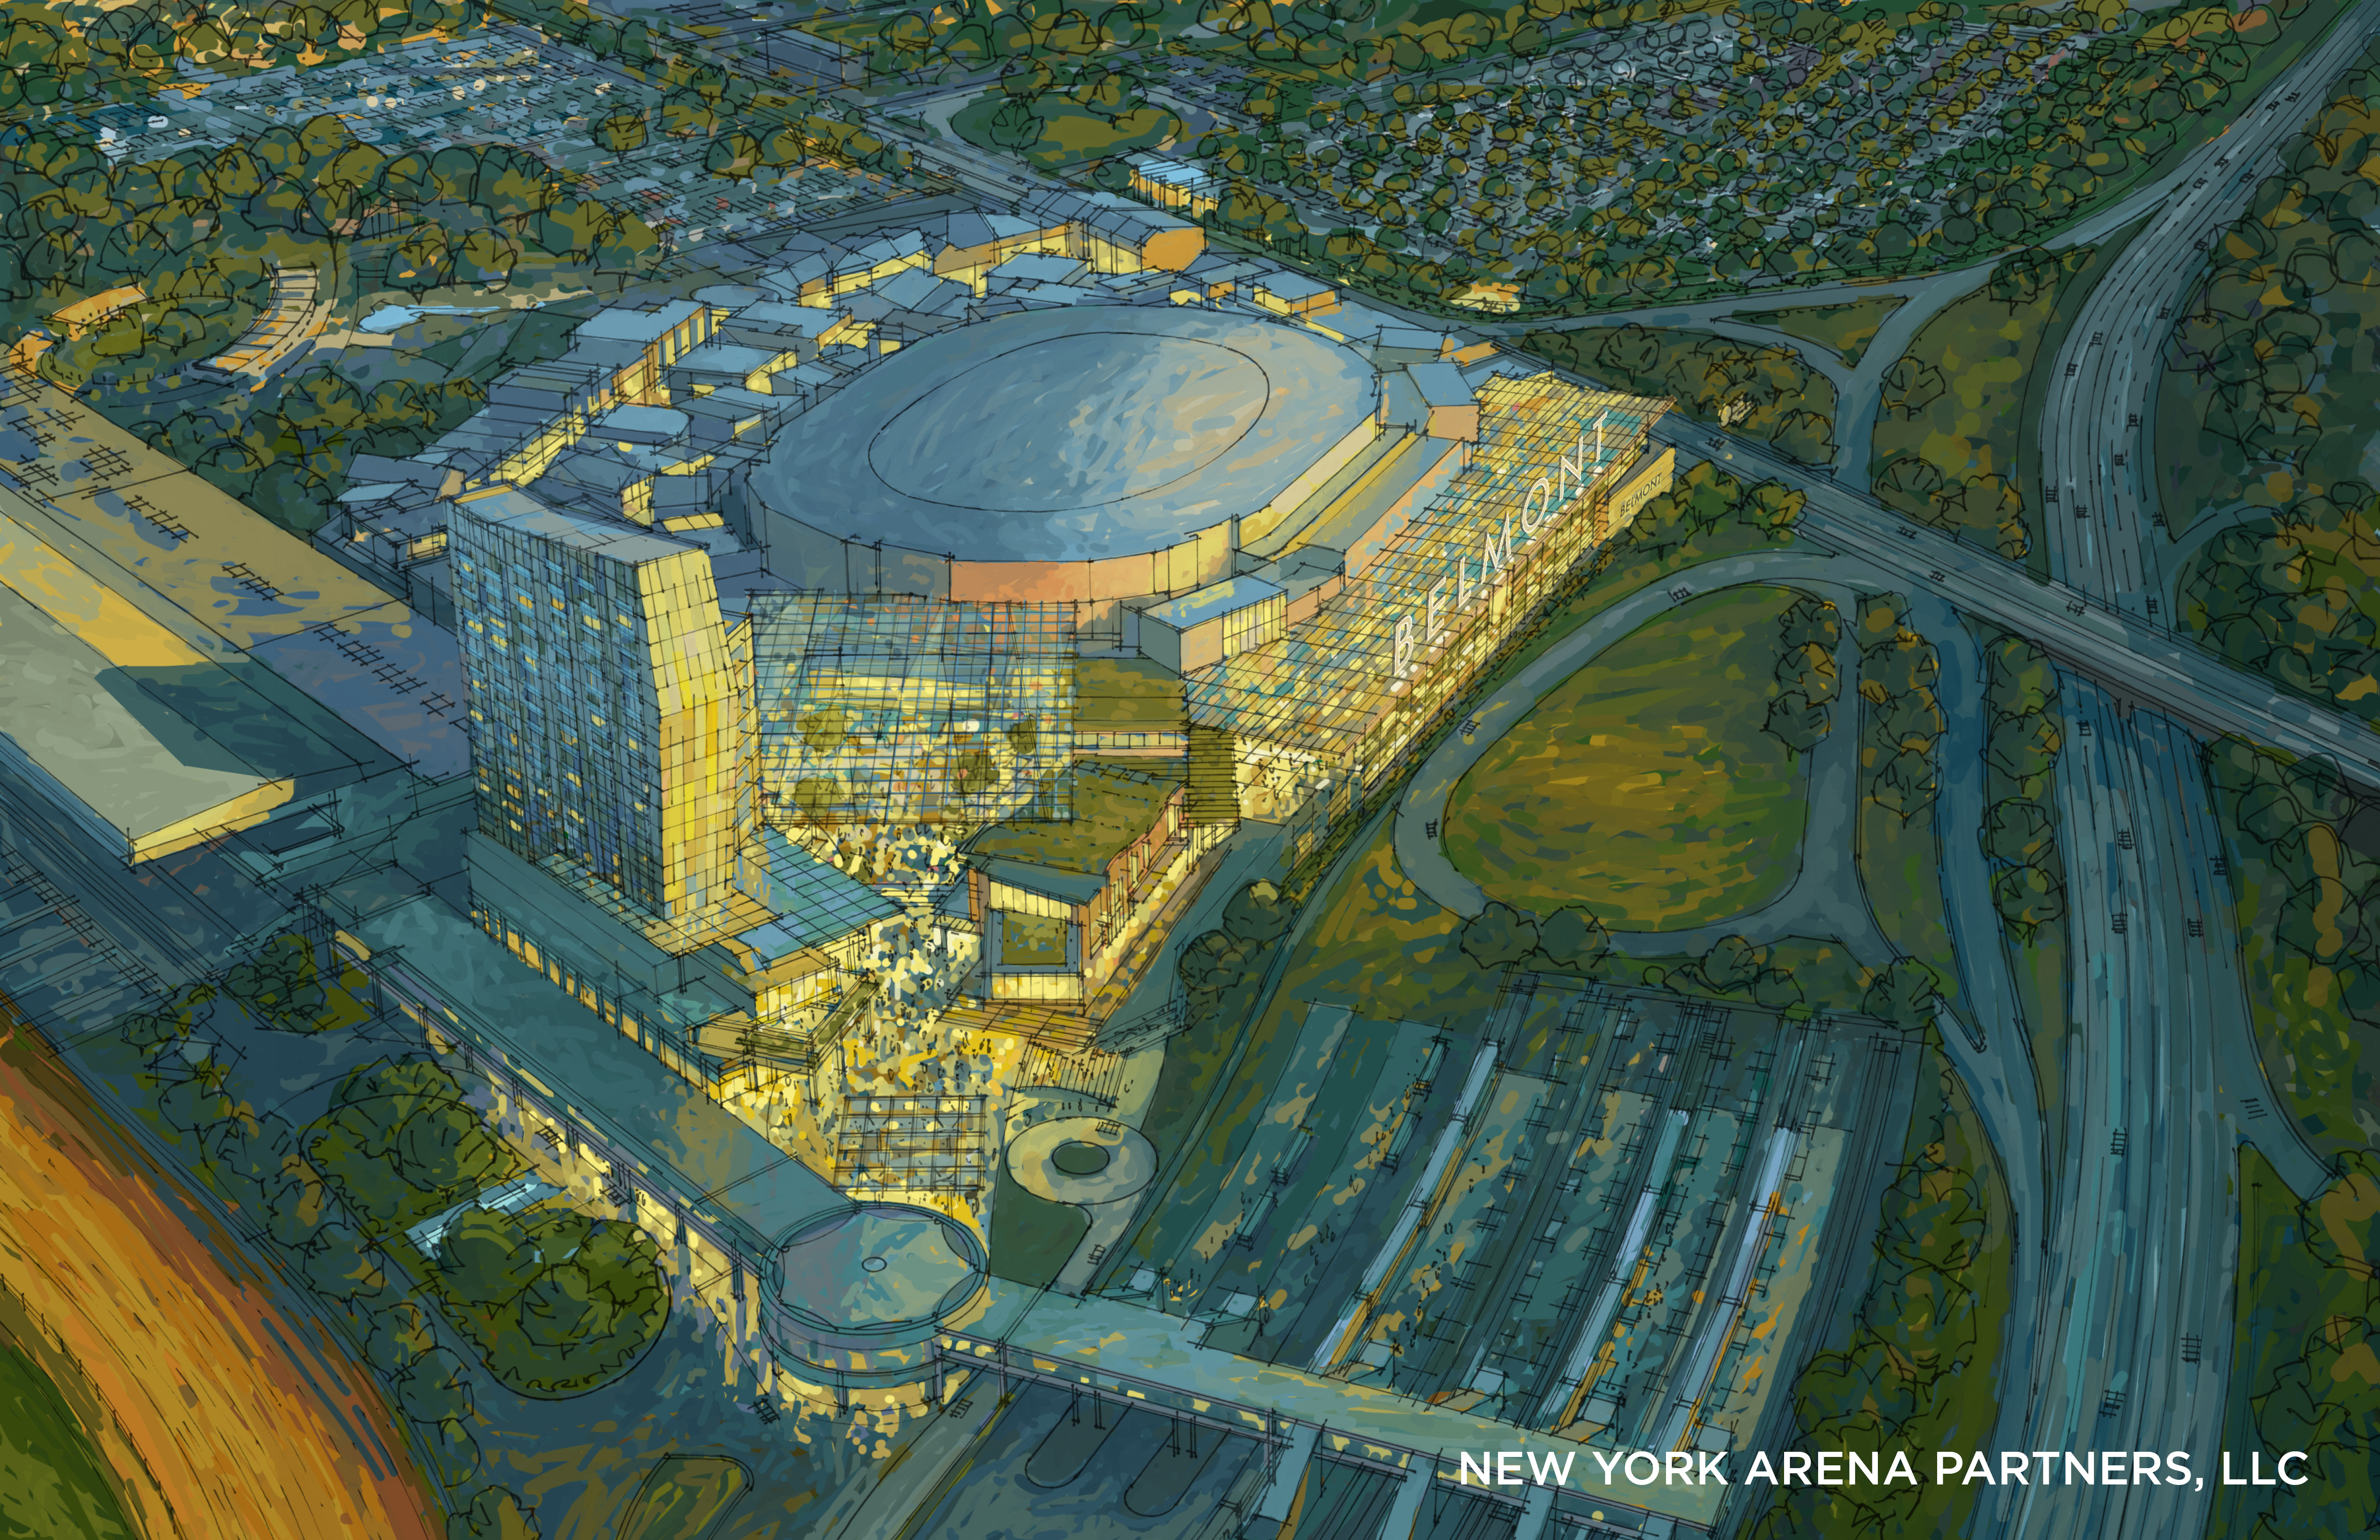 It's official: New York Islanders win bid to build a new home near Belmont Park